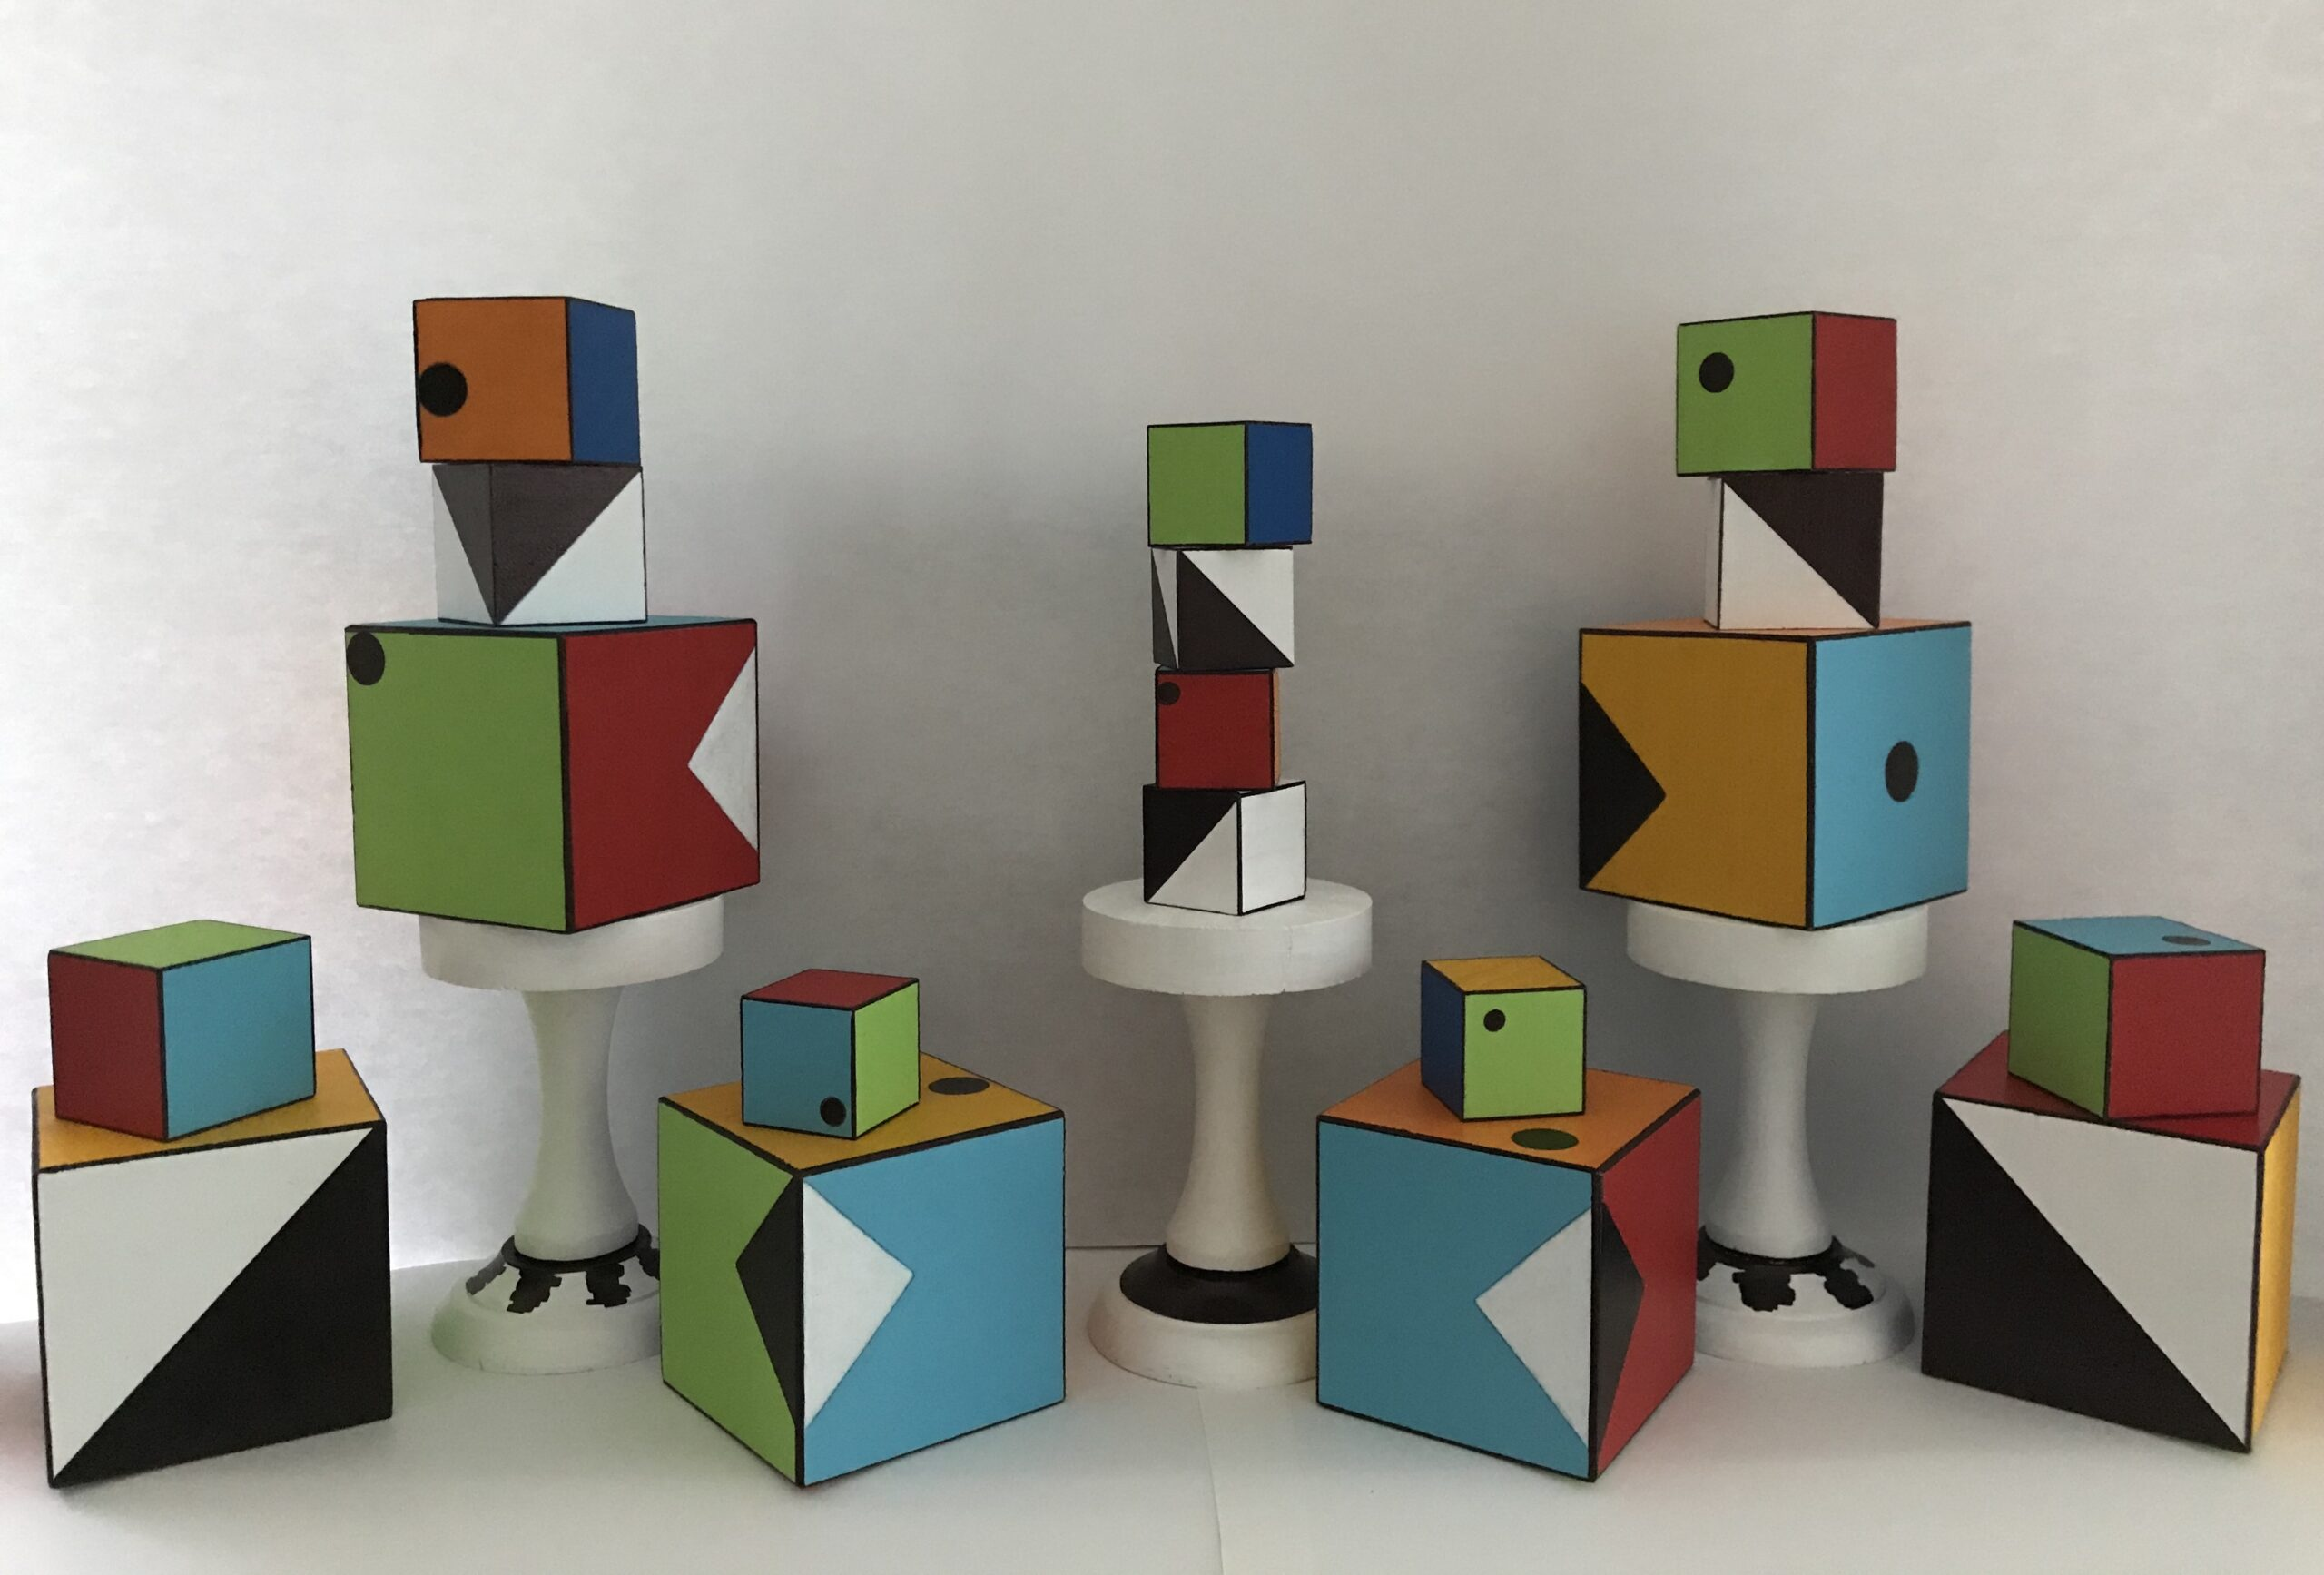 """""""Building Blocks of Life"""" by Lisa Collodoro, acrylic on wood, sizes range from 1.5 to 3.5 inches"""